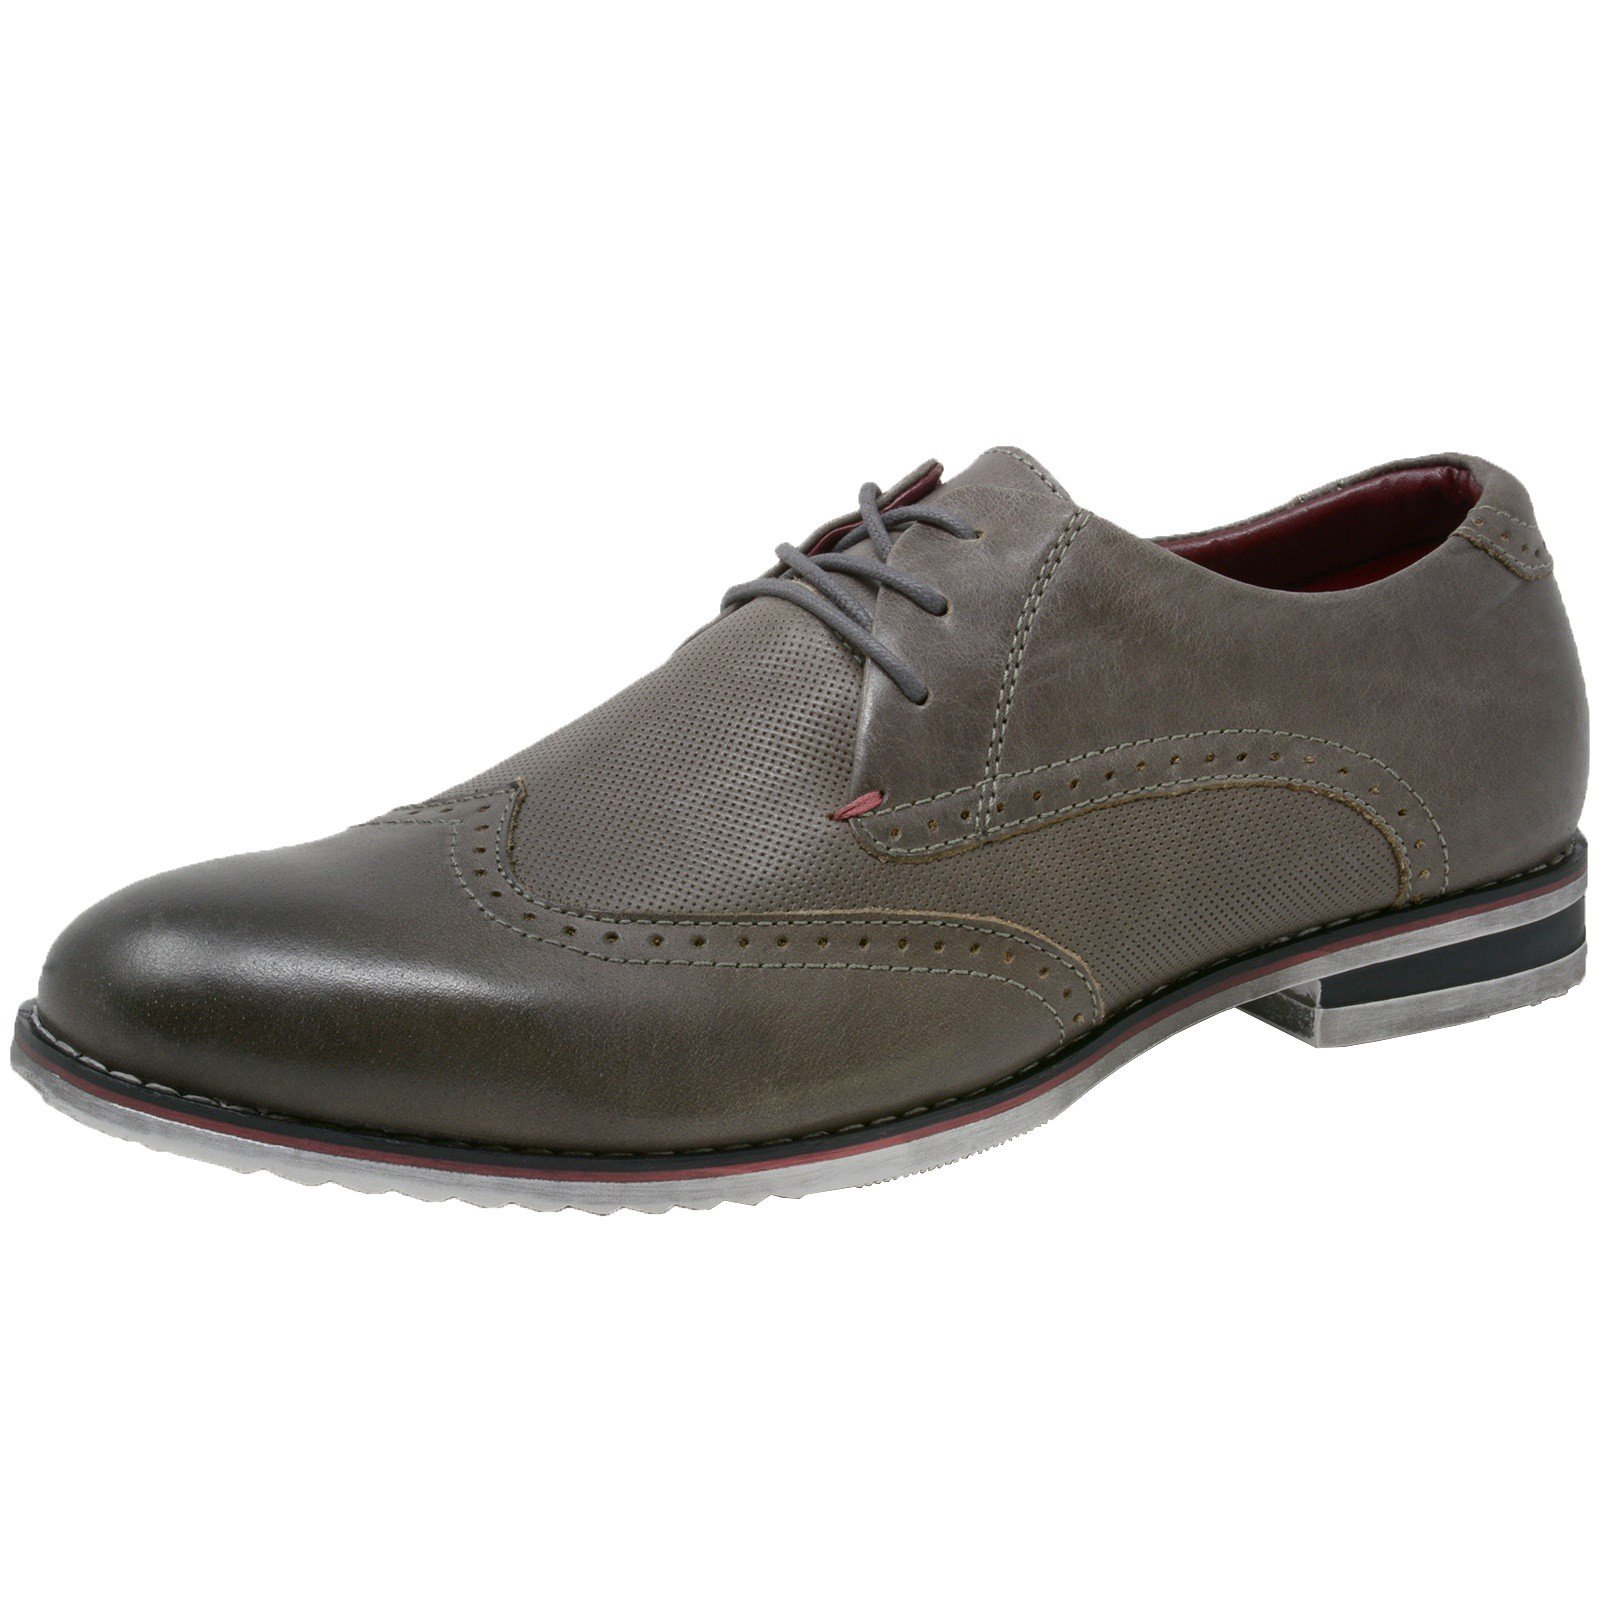 alpine swiss Mens Leather Wingtip Lace-up Oxford Dress Shoes Gry 11 M US